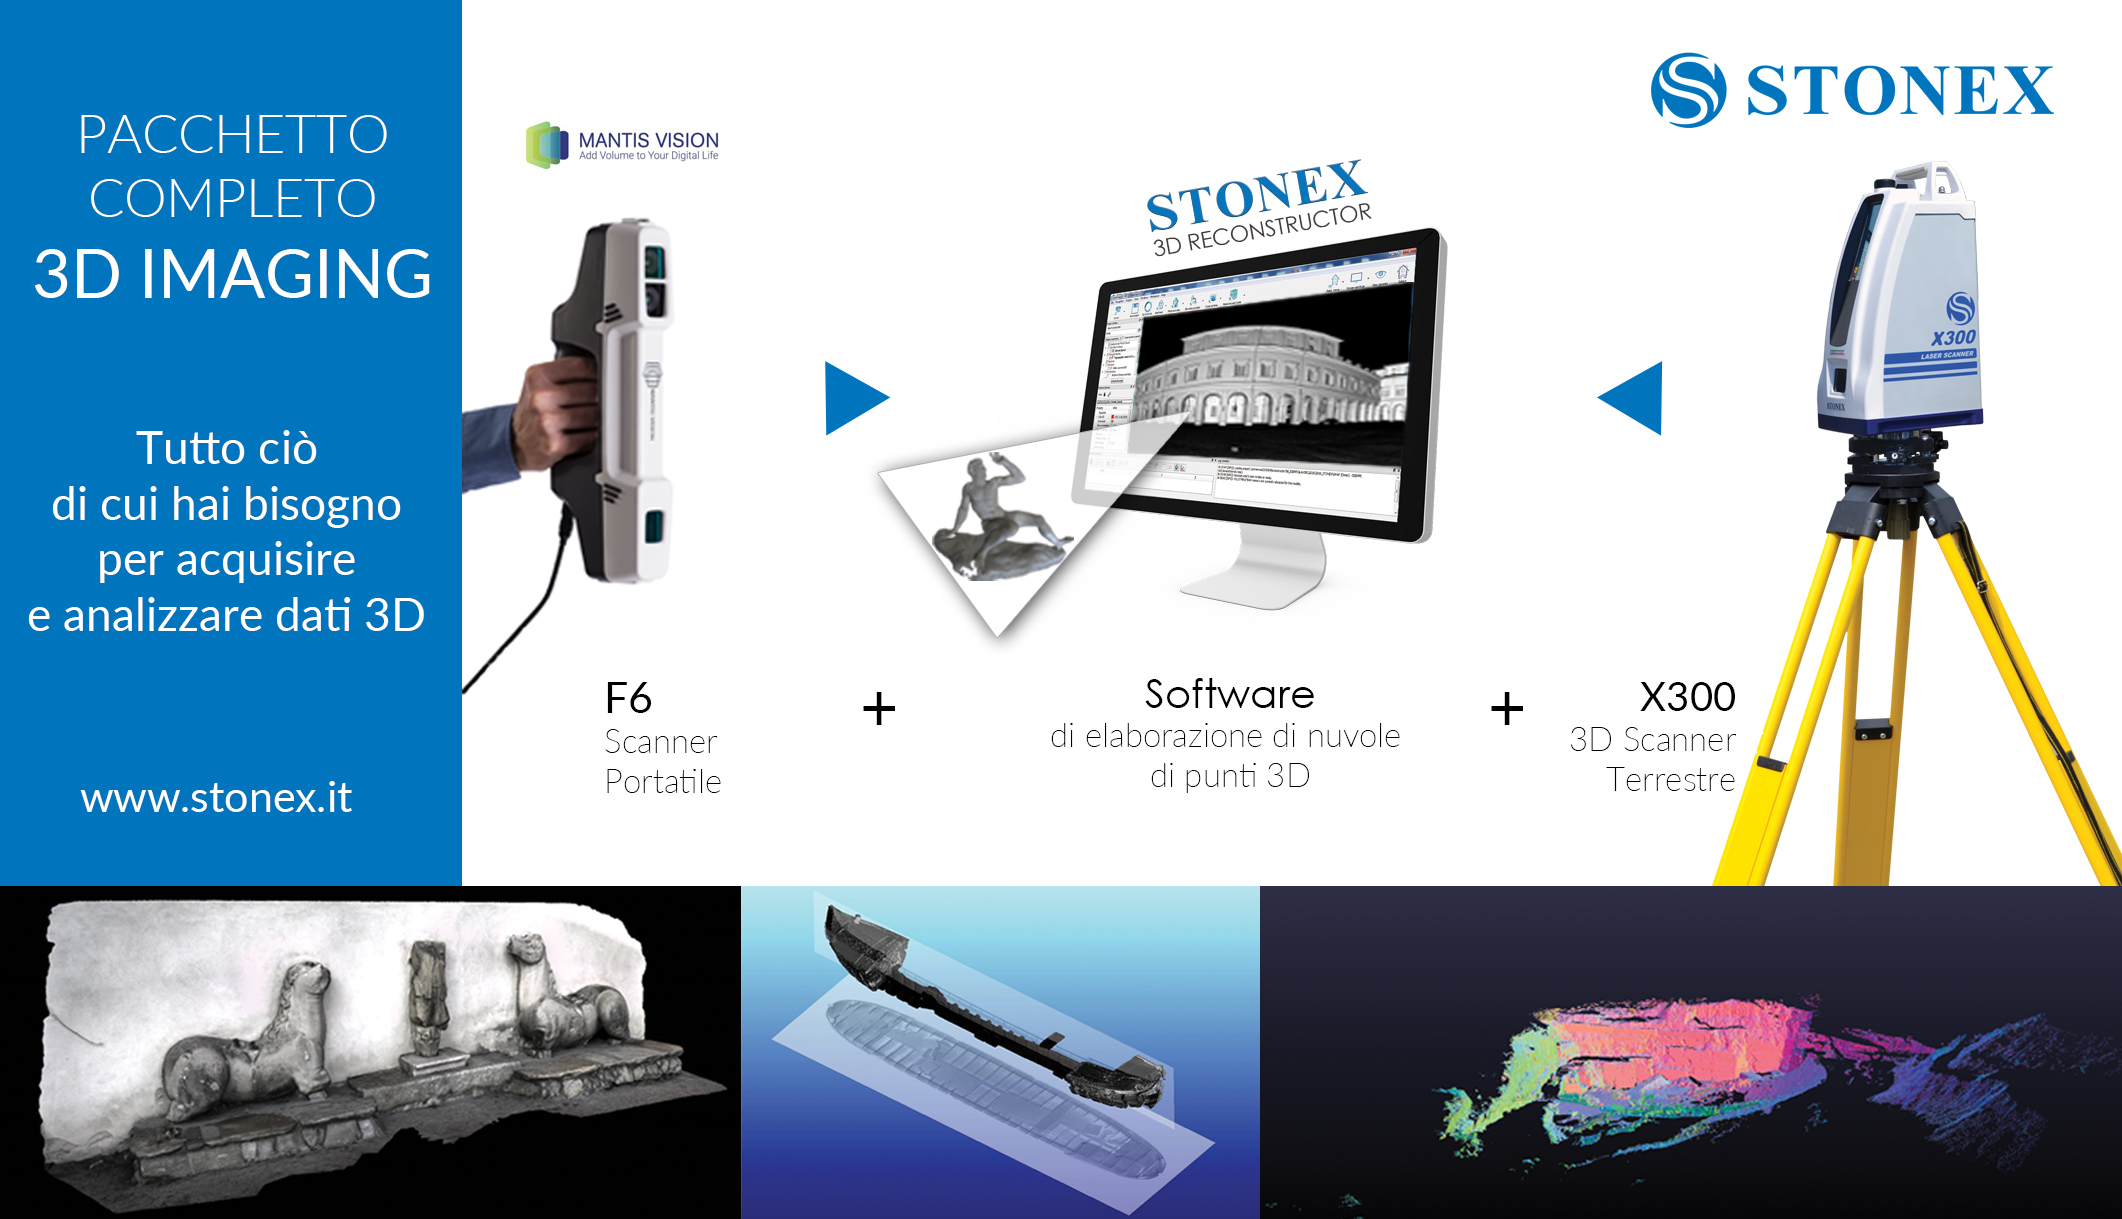 Pacchetto completo 3D Imaging  Scanner 3D X300 + Stonex 3D Reconstructor Software + Scanner portatile F6